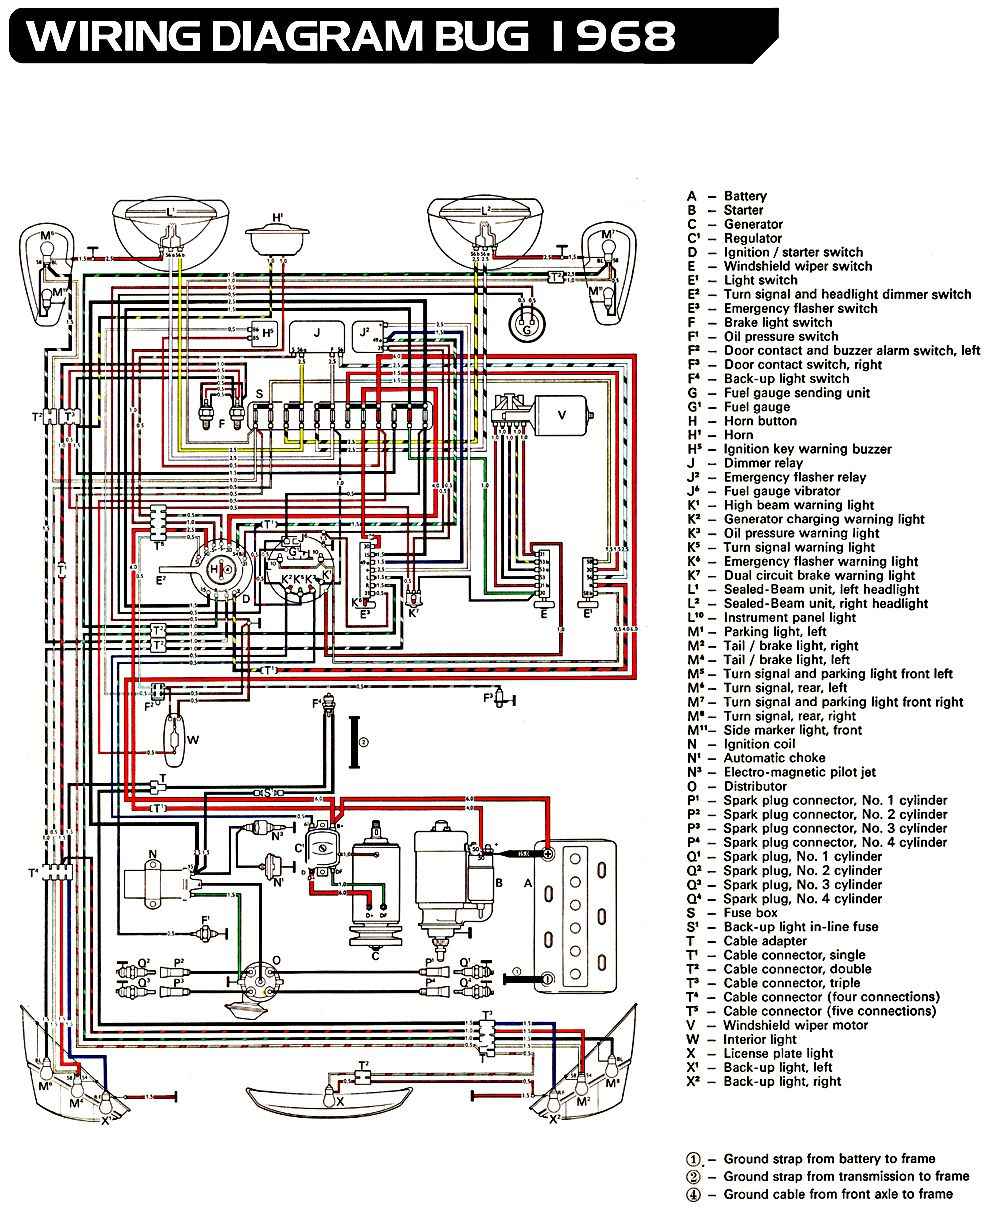 vw car wiring diagram new era of wiring diagram